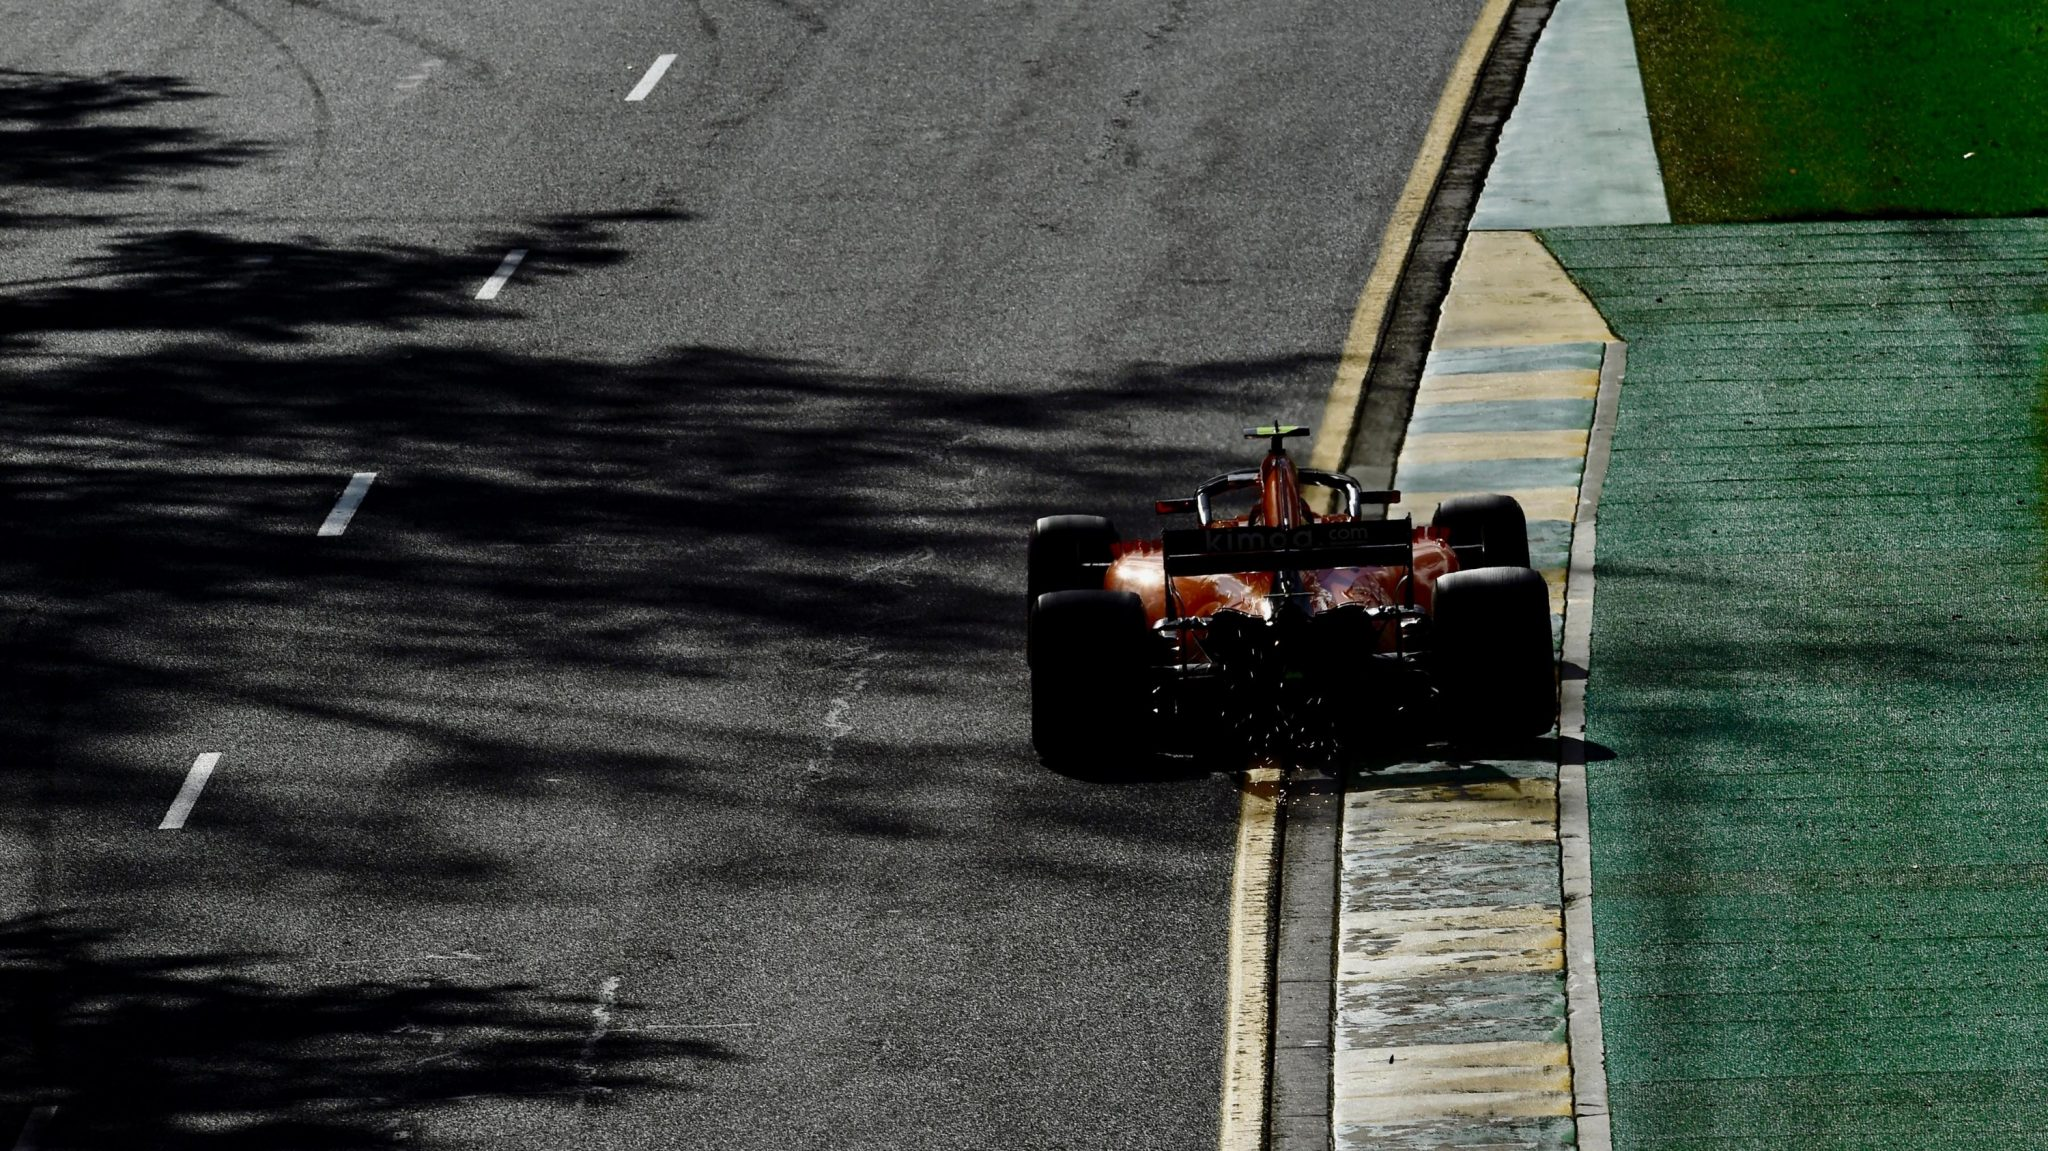 https://www.formula1.com/content/fom-website/en/latest/features/2018/3/gallery--best-images-from-australia/_jcr_content/featureContent/manual_gallery_96270764/image61.img.2048.medium.jpg/1521970415166.jpg